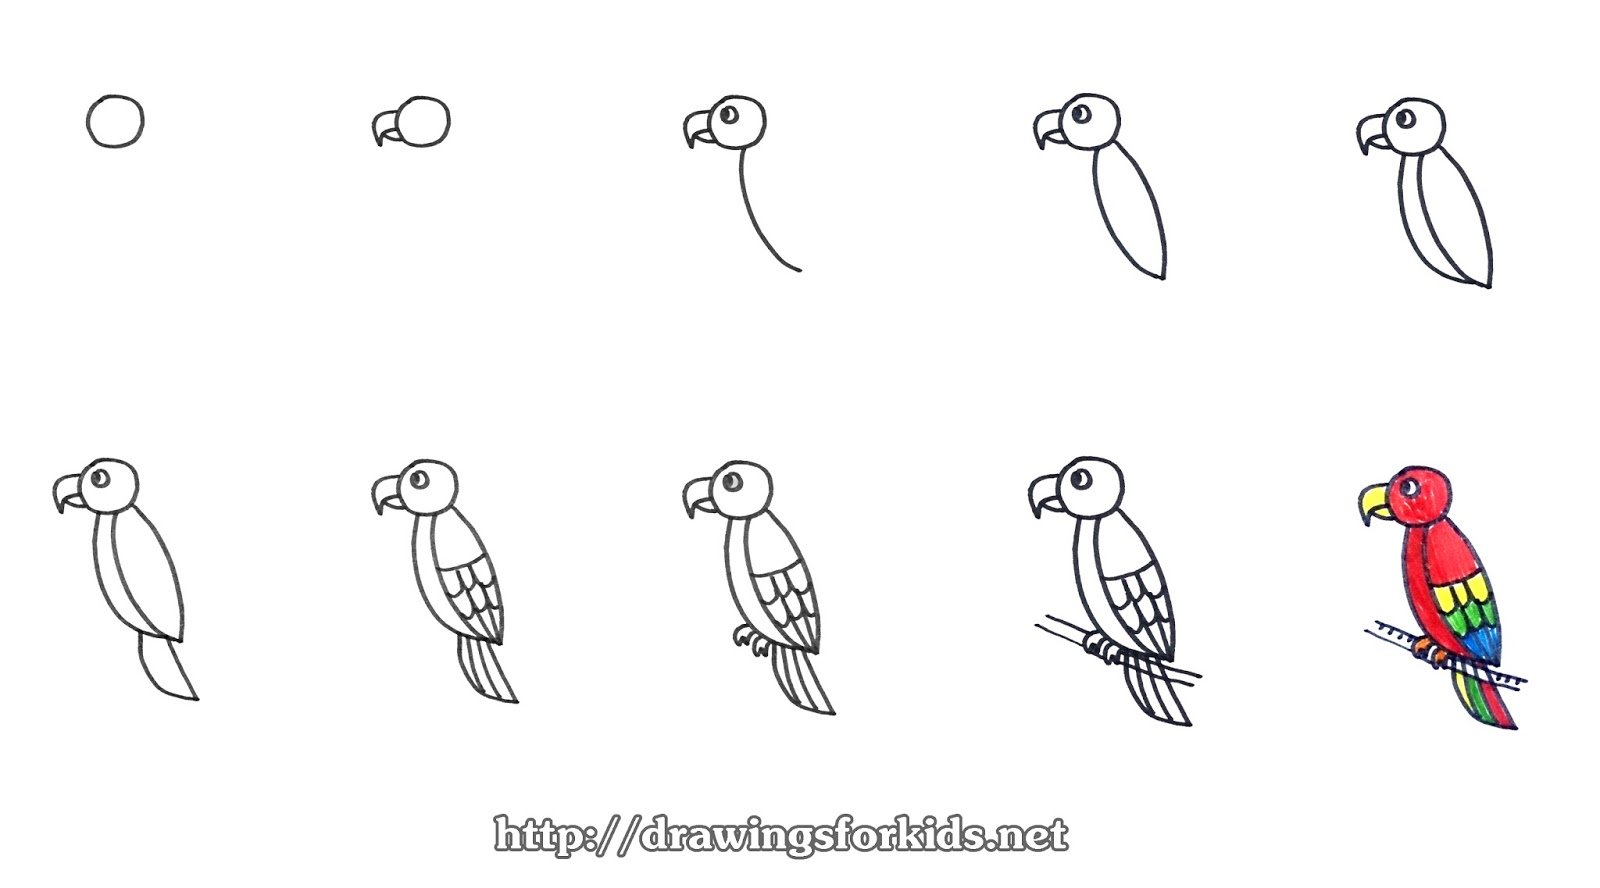 How to draw a Parrot for kids - drawingsforkids.net